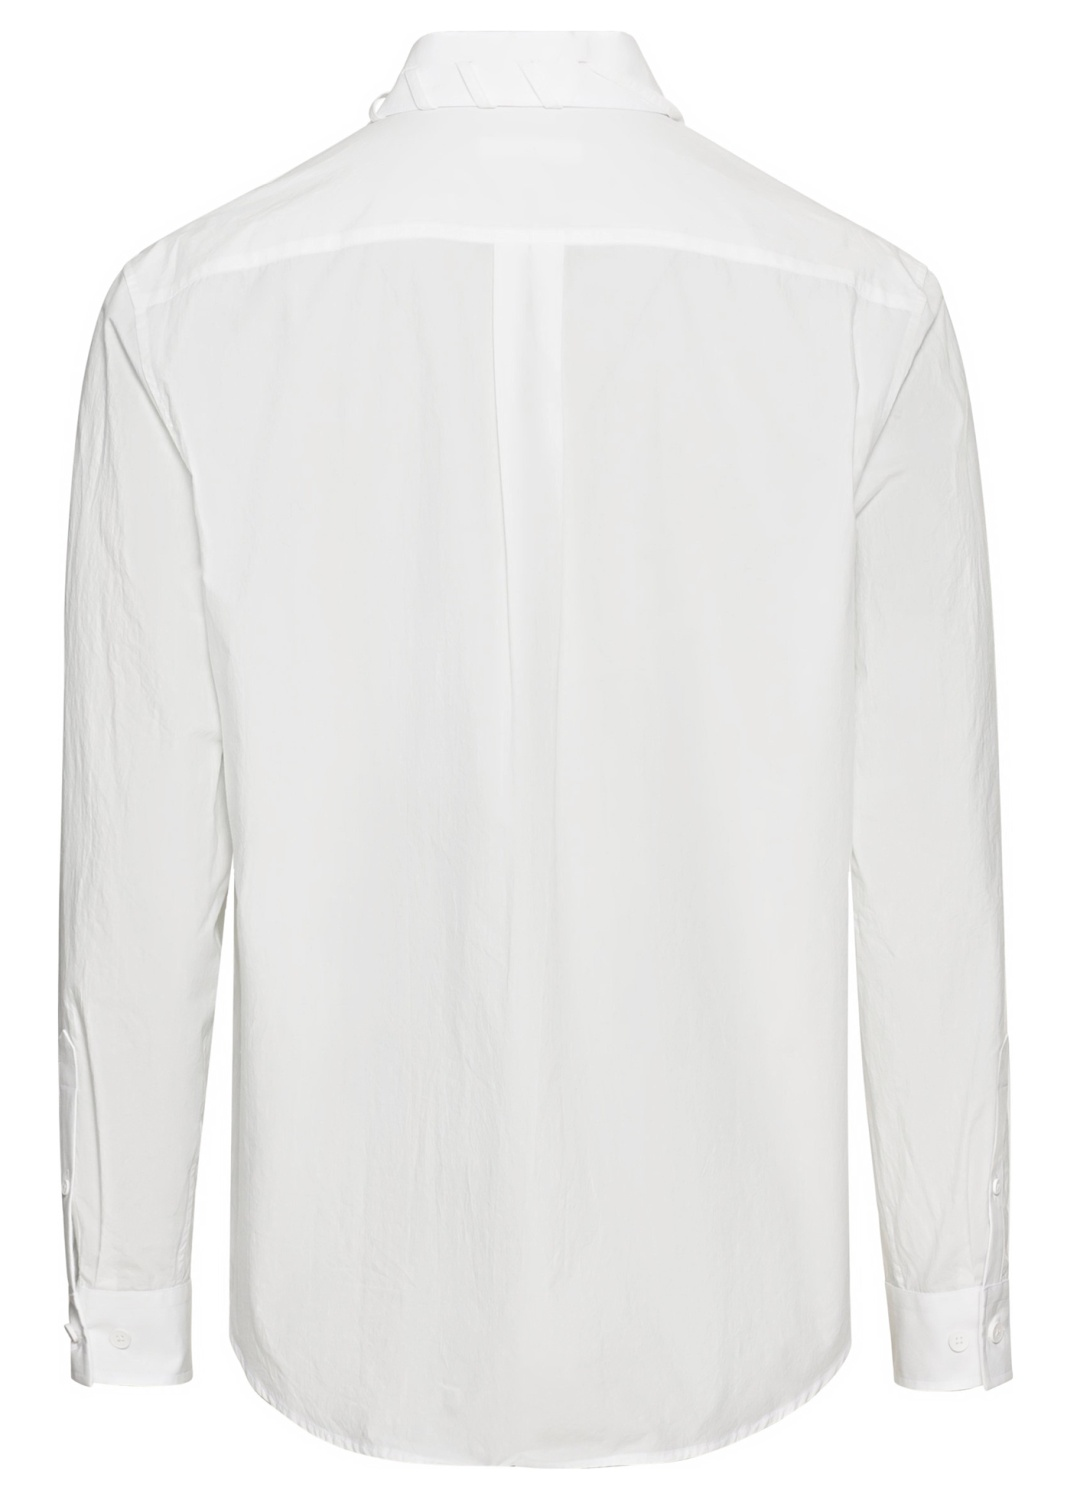 Laced Shirt image number 1